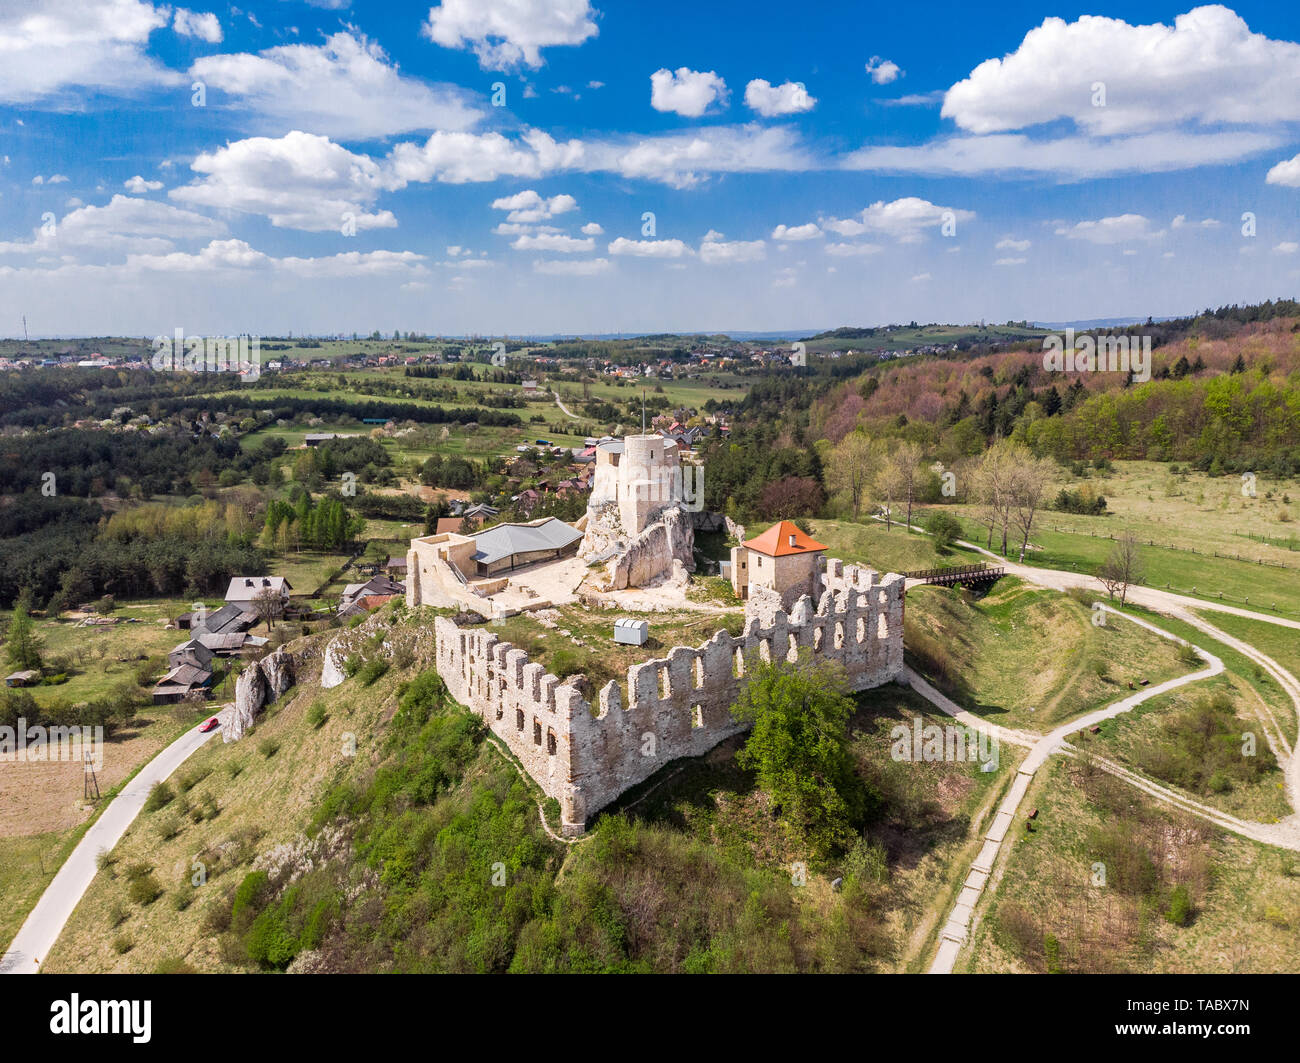 Aerial view of medieval Rabsztyn Castle ruins on hill top in sunny day, in Poland. Stock Photo